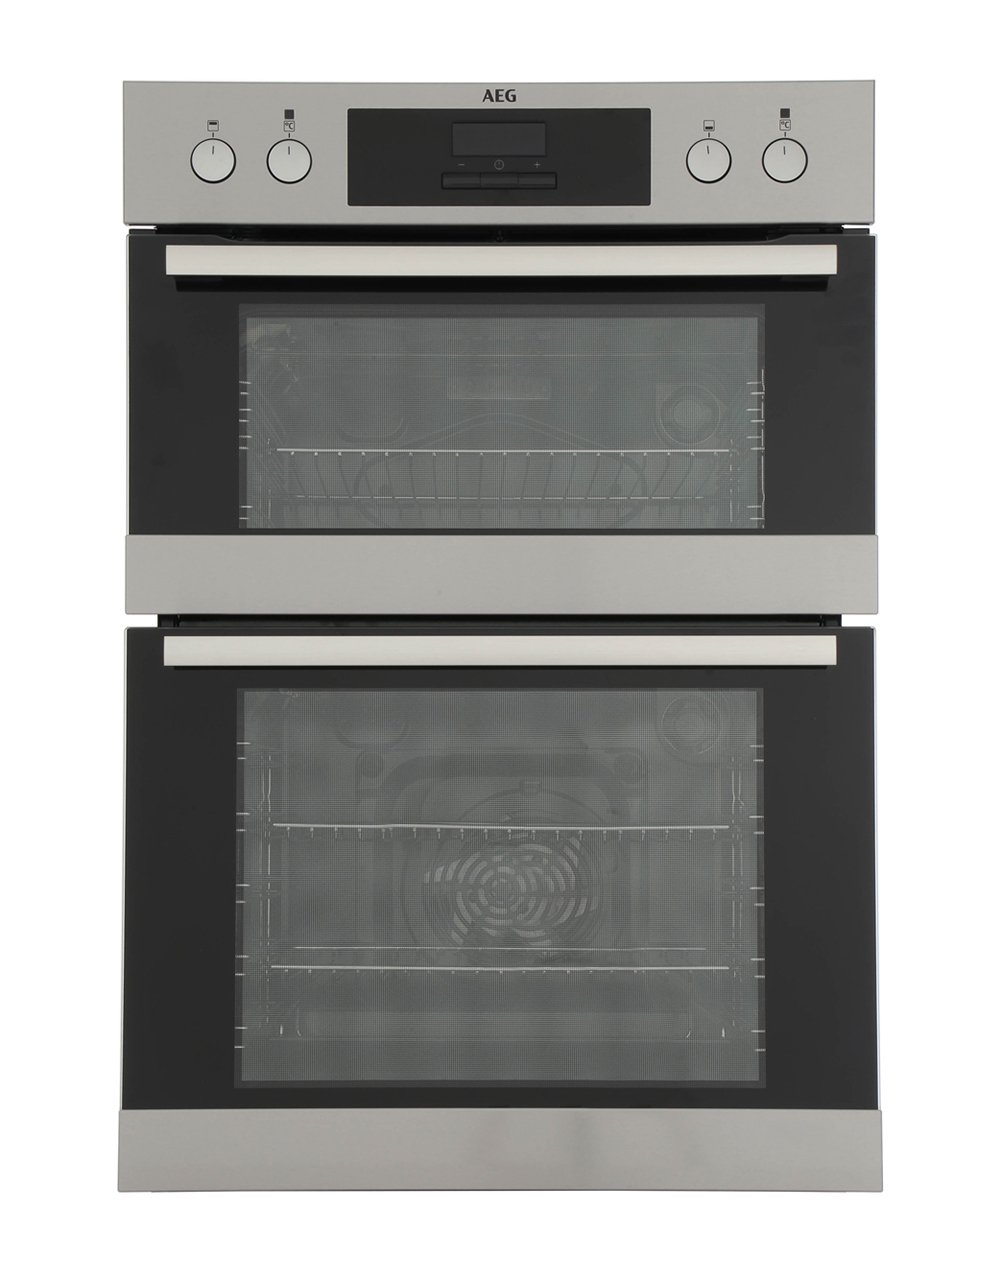 buy aeg deb331010m double built in electric oven. Black Bedroom Furniture Sets. Home Design Ideas